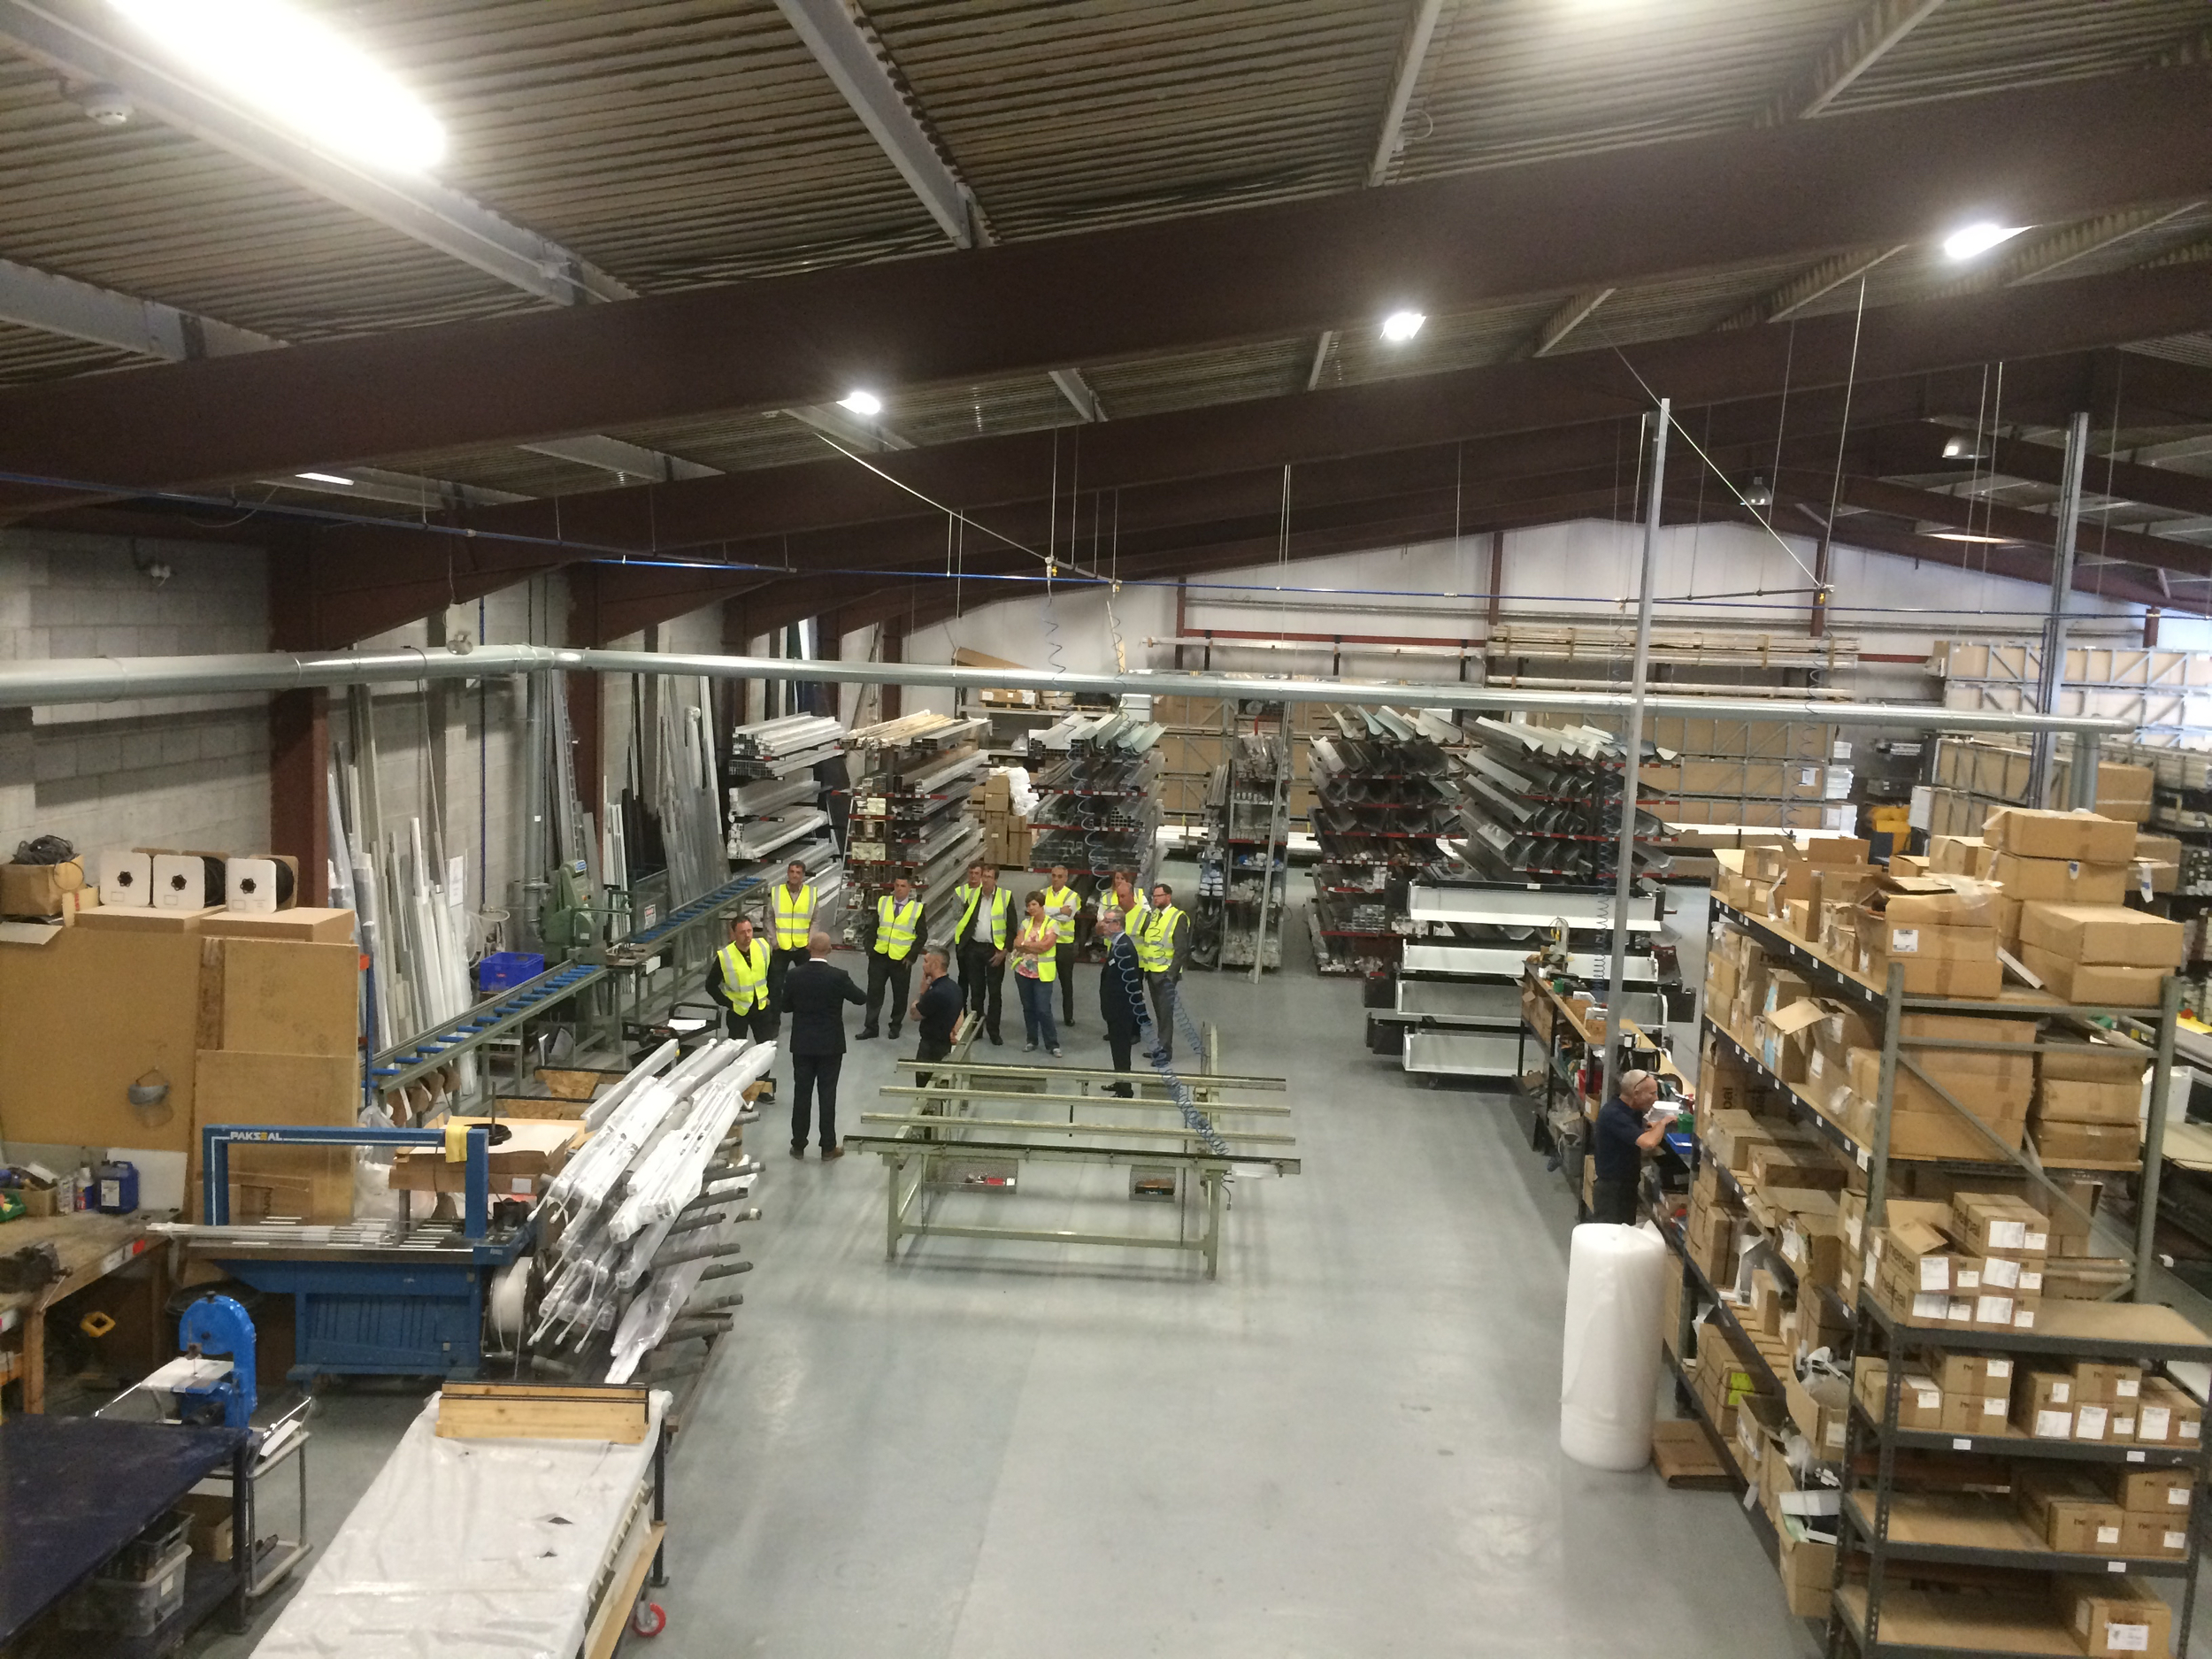 Guests having a tour of the Aluroll Aluminium Manufacturing Facility